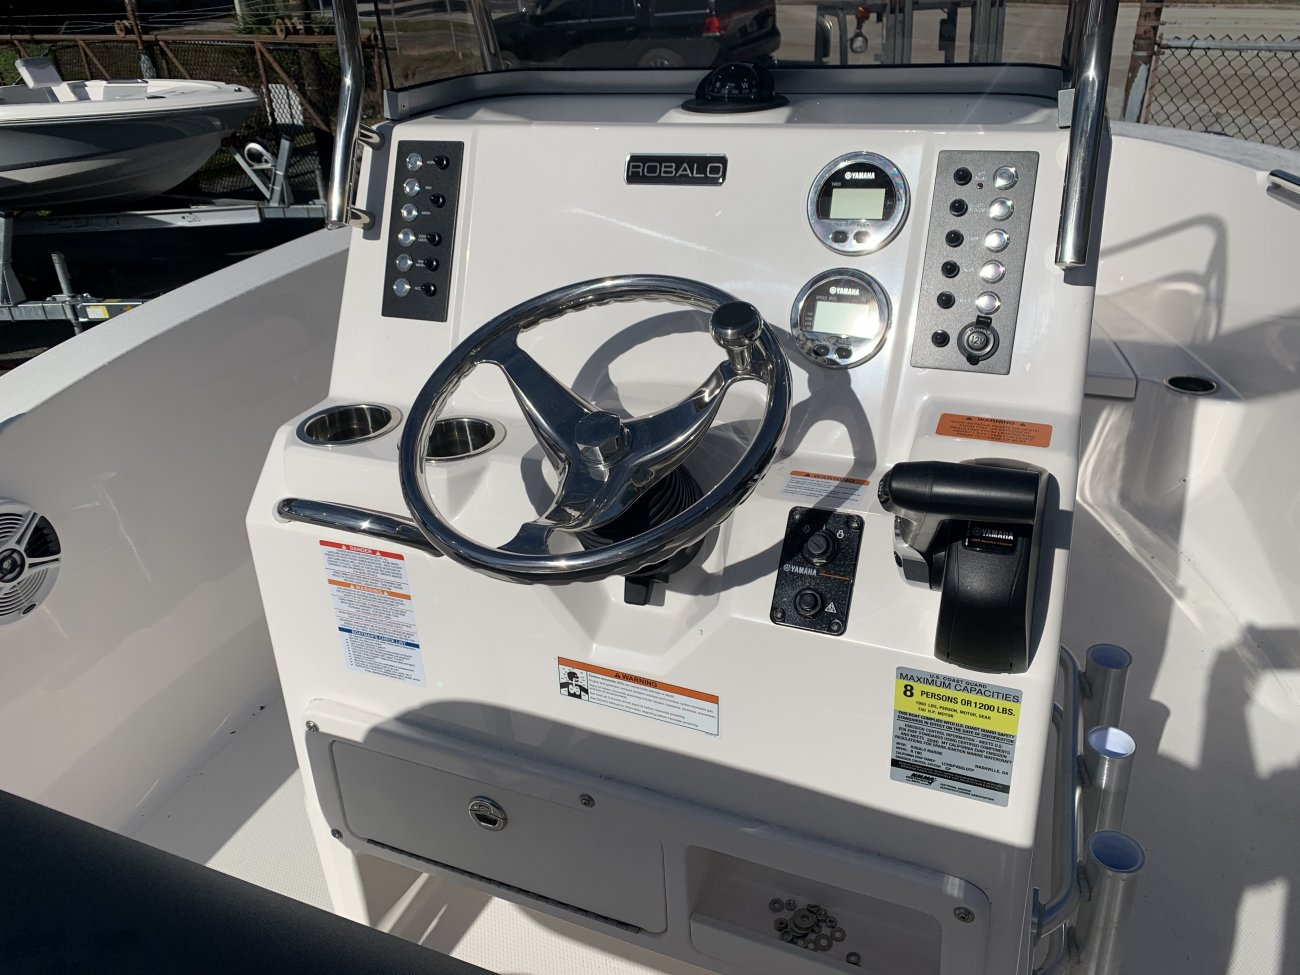 A R180 Center Console is a Power and could be classed as a Center Console, Fish and Ski, Freshwater Fishing, High Performance, Saltwater Fishing, Runabout,  or, just an overall Great Boat!